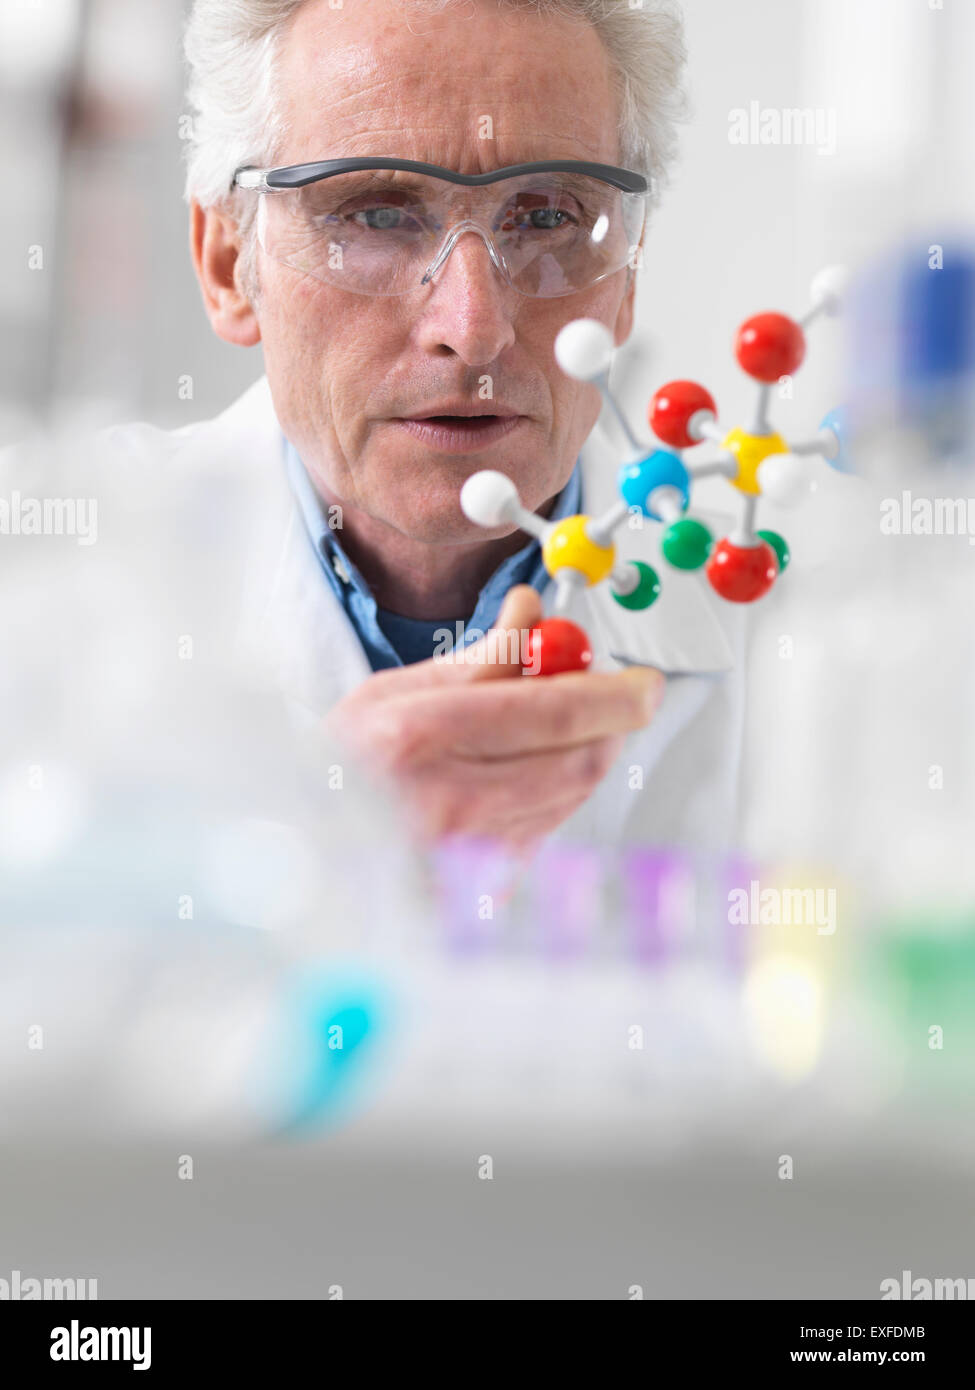 Scientist viewing molecular model of a chemical formula in a laboratory - Stock Image